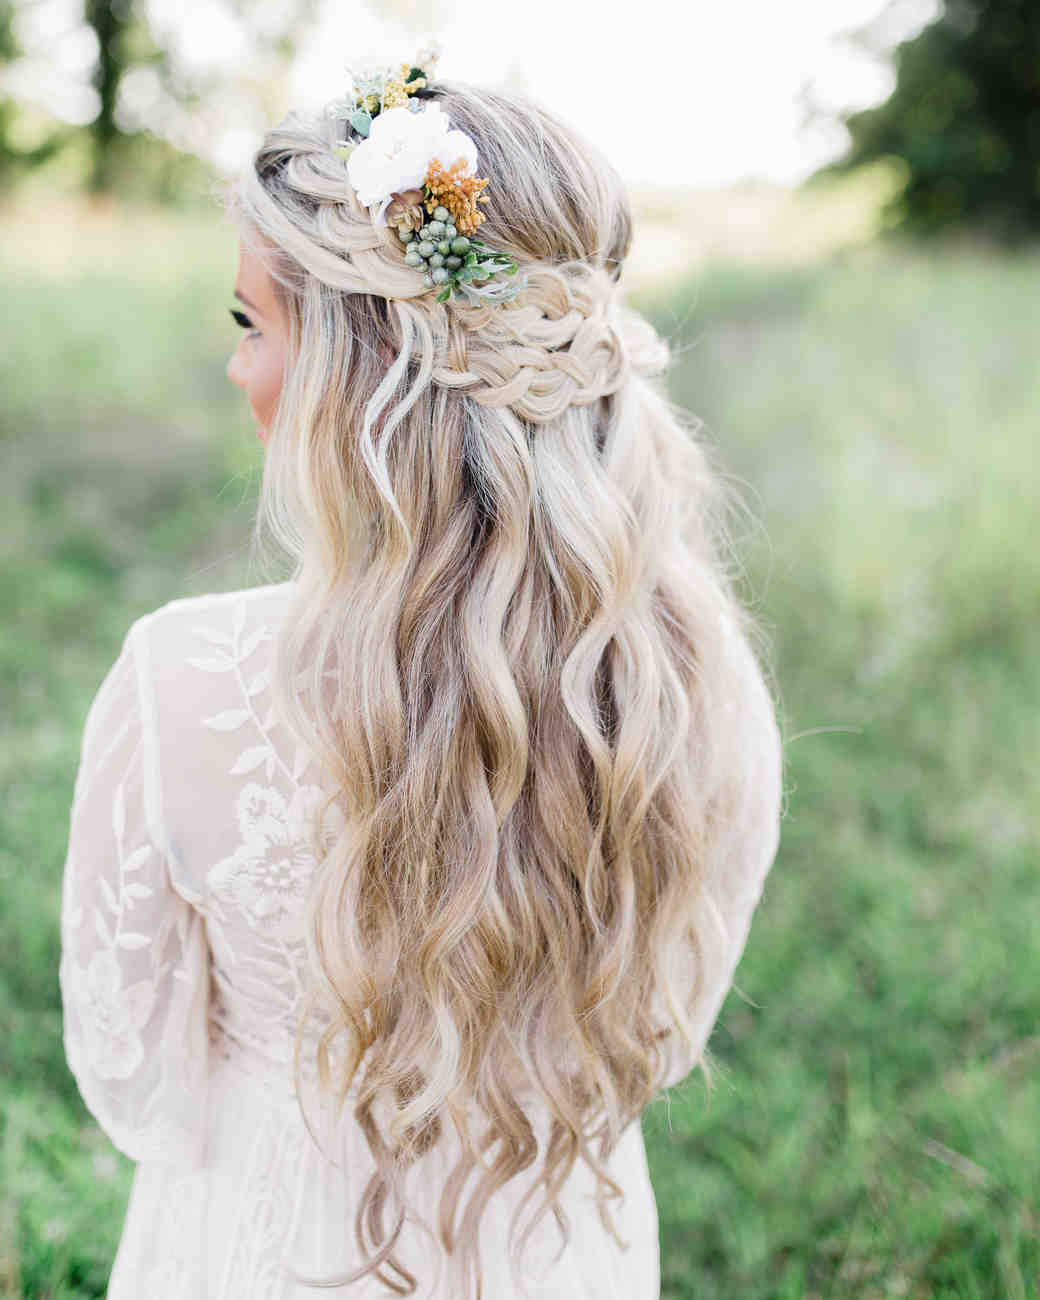 honey bee hair style 25 braided wedding hairstyles we martha stewart 5408 | braids honey and bee photography 0918 vert